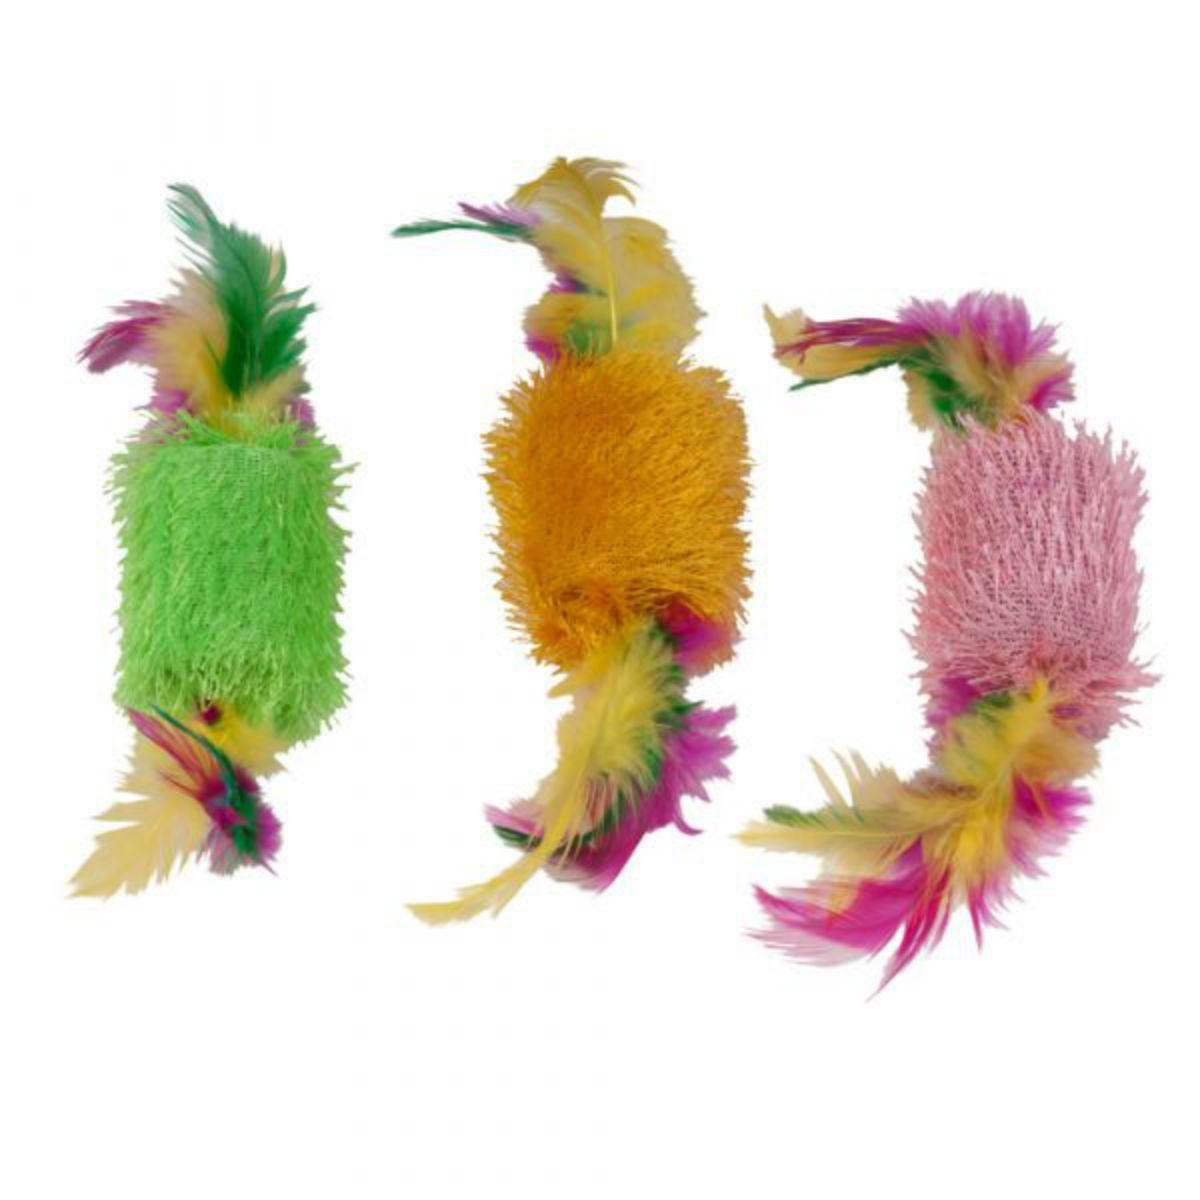 Kylie's Brights Shaggy Spools with Feathers Cat Toy - 3-Pack